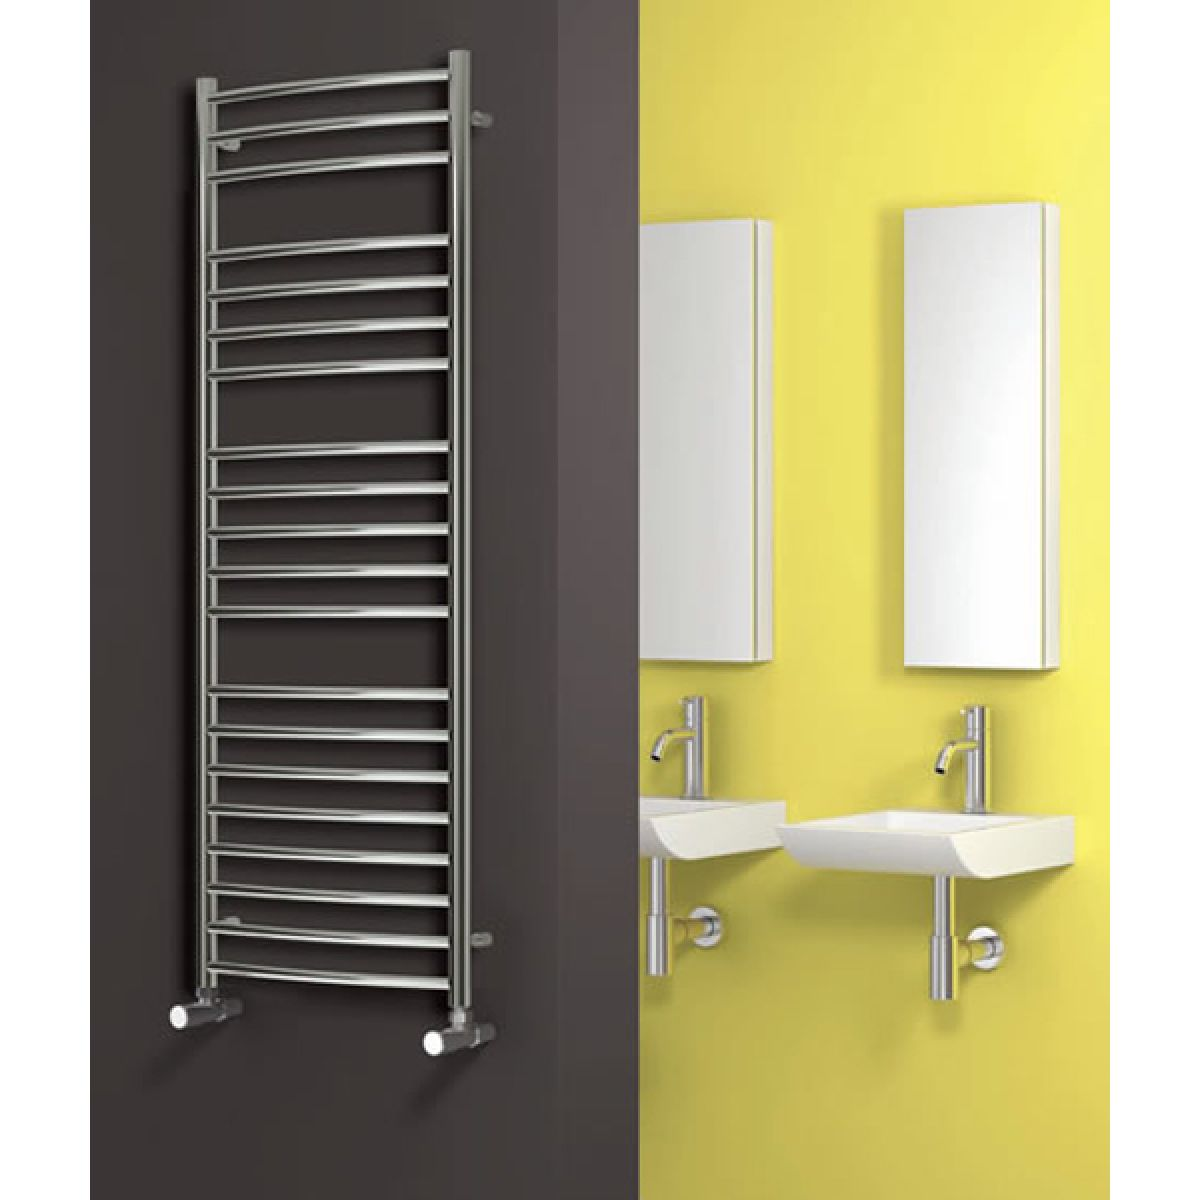 Reina Eos Polished Stainless Steel Curved Electric Towel rail 720 x 500mm